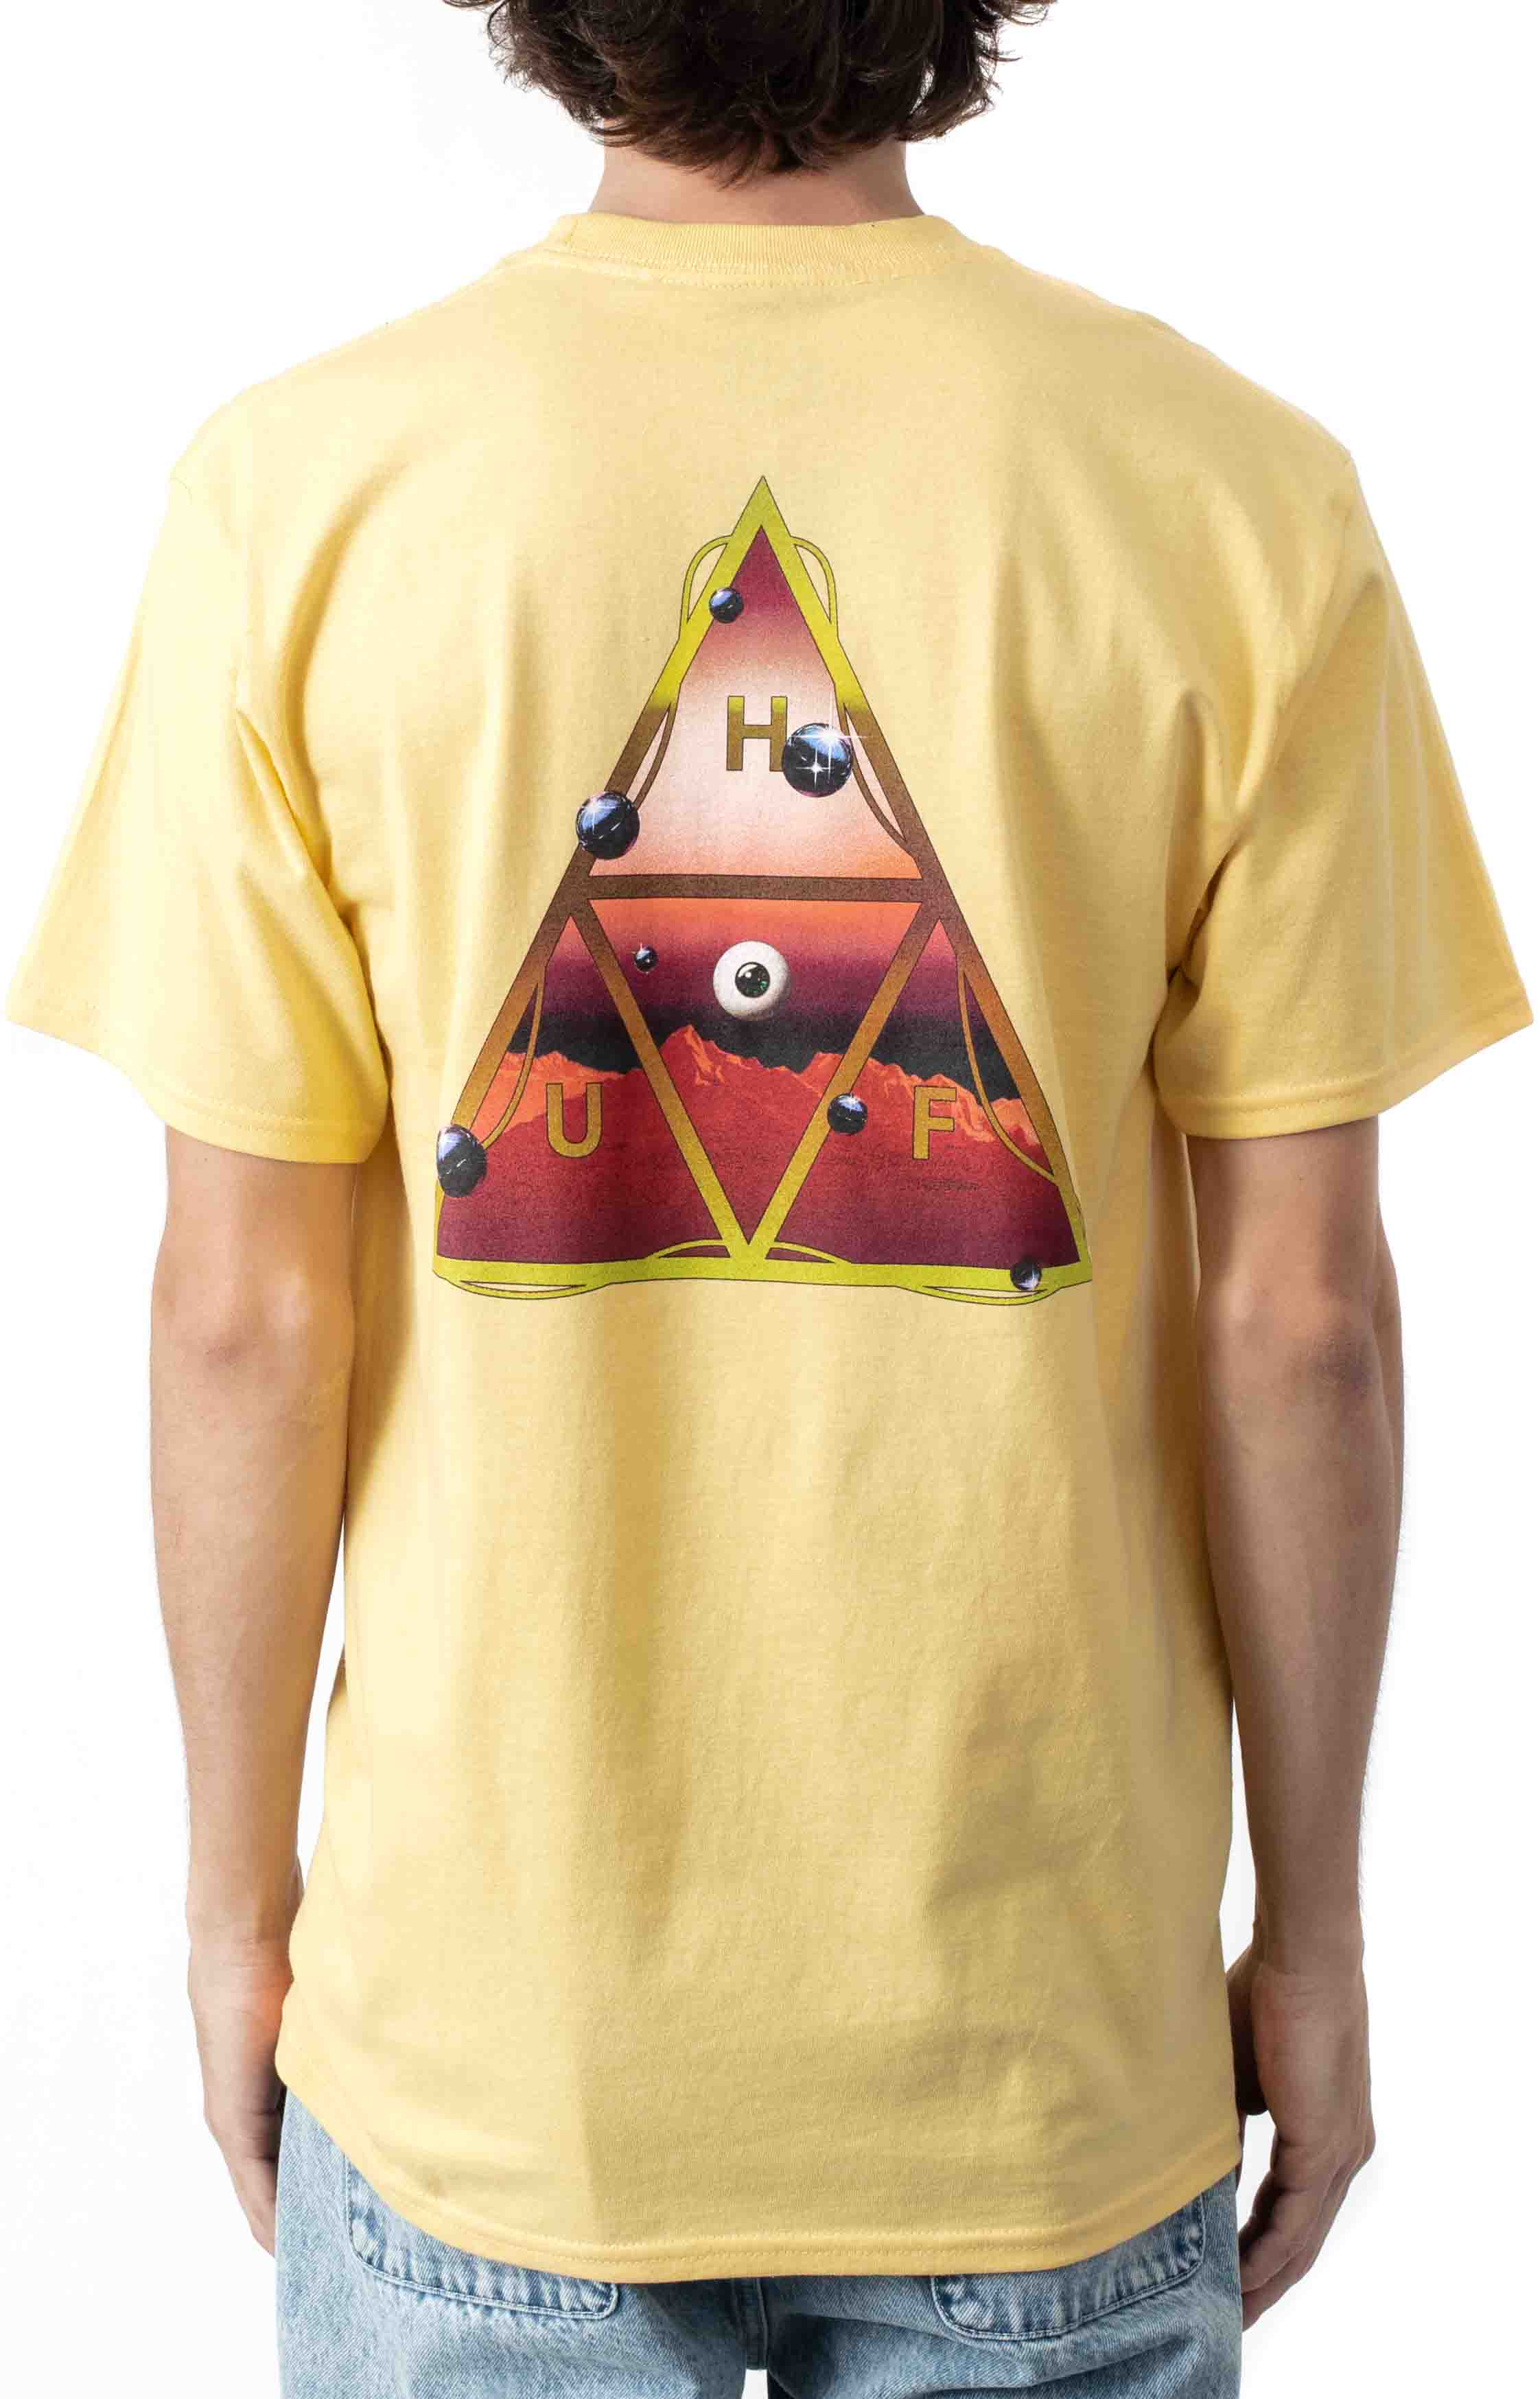 Altered State TT T-Shirt - Washed Yellow  3